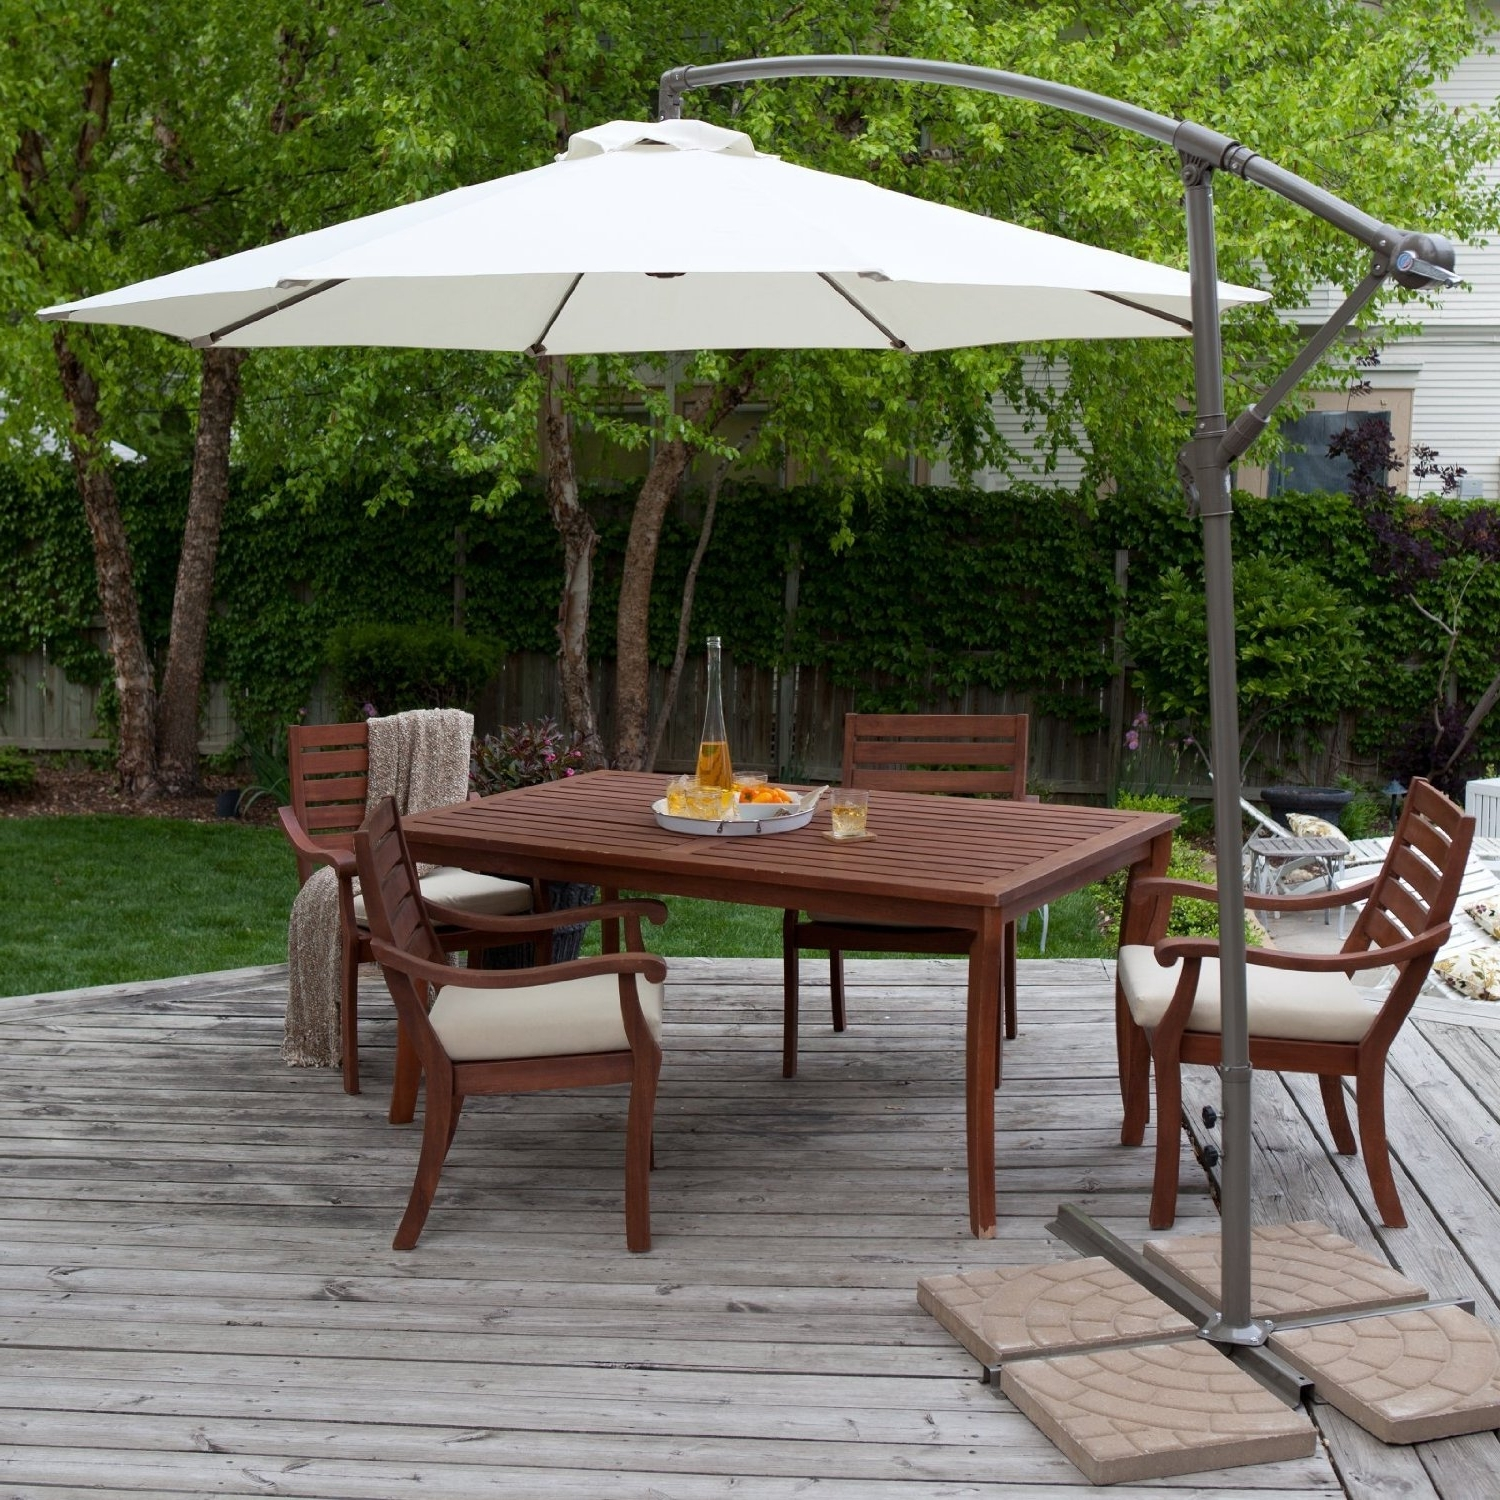 Patio Table And Chairs With Umbrellas Within Widely Used Interior : Patio Table Chairs Umbrella Set New Furniture Sets With (View 18 of 20)